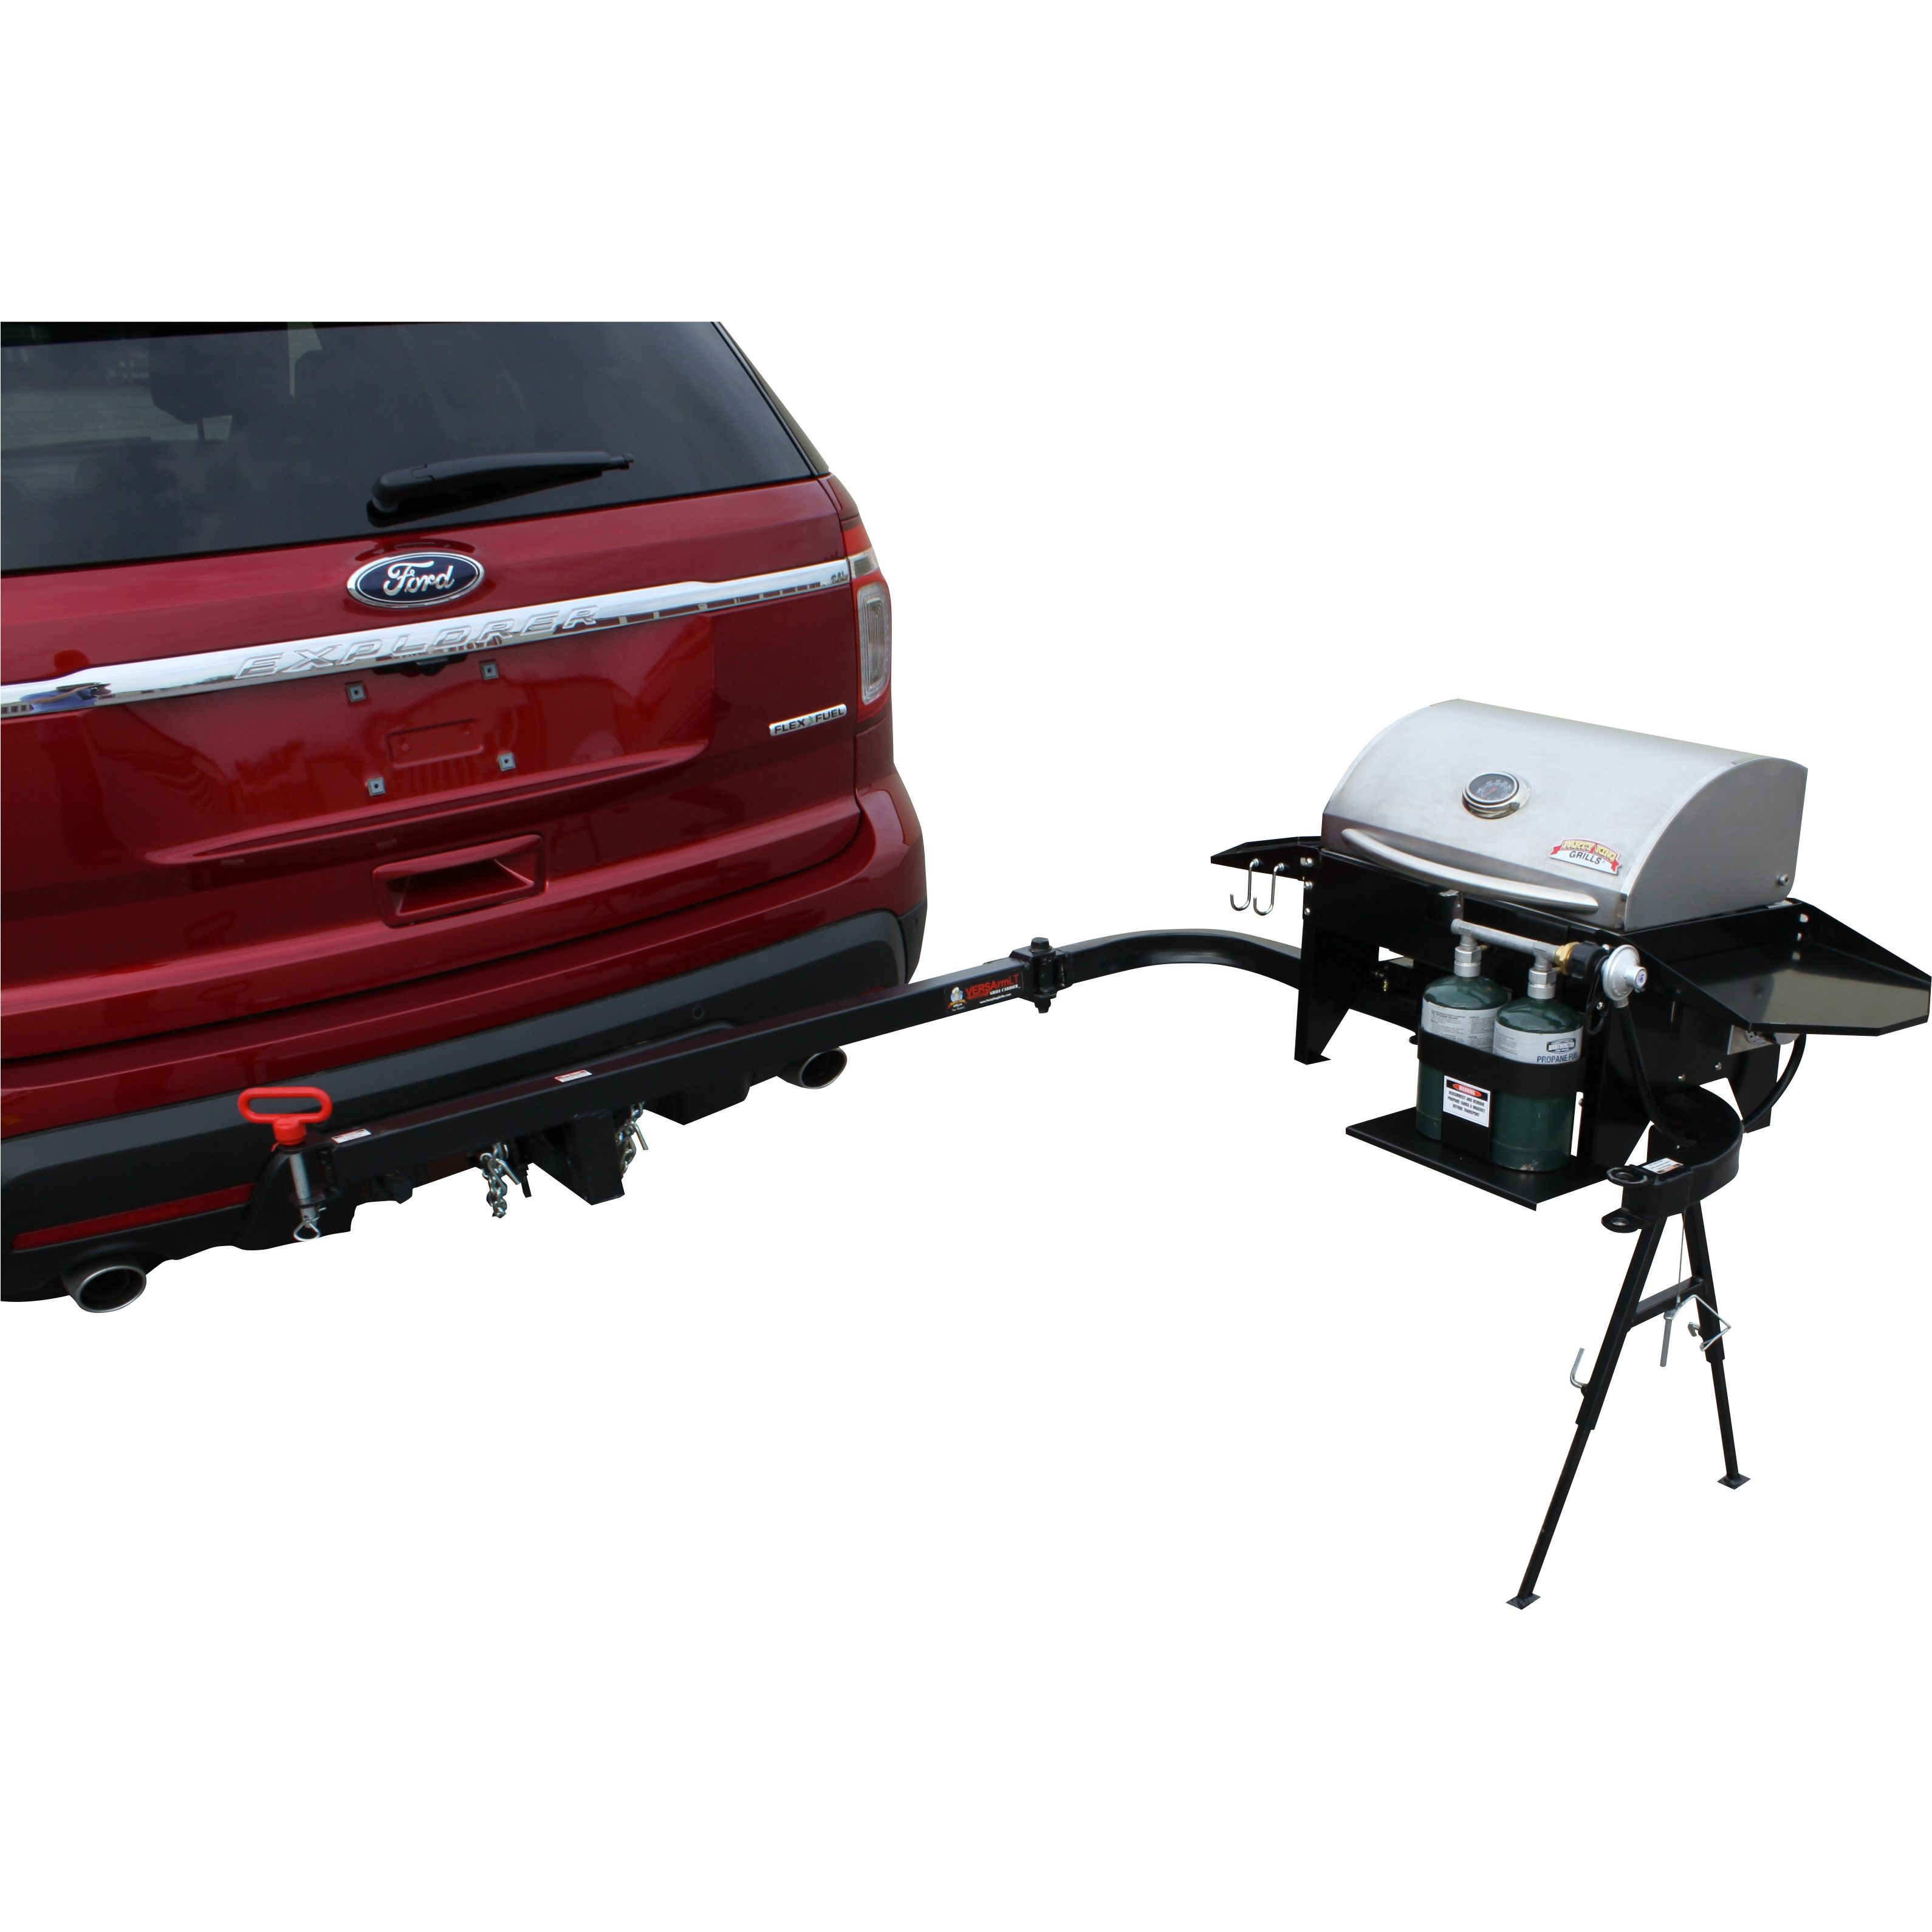 The Varsity6412 is one of Party King Grills hitch mount tailgate